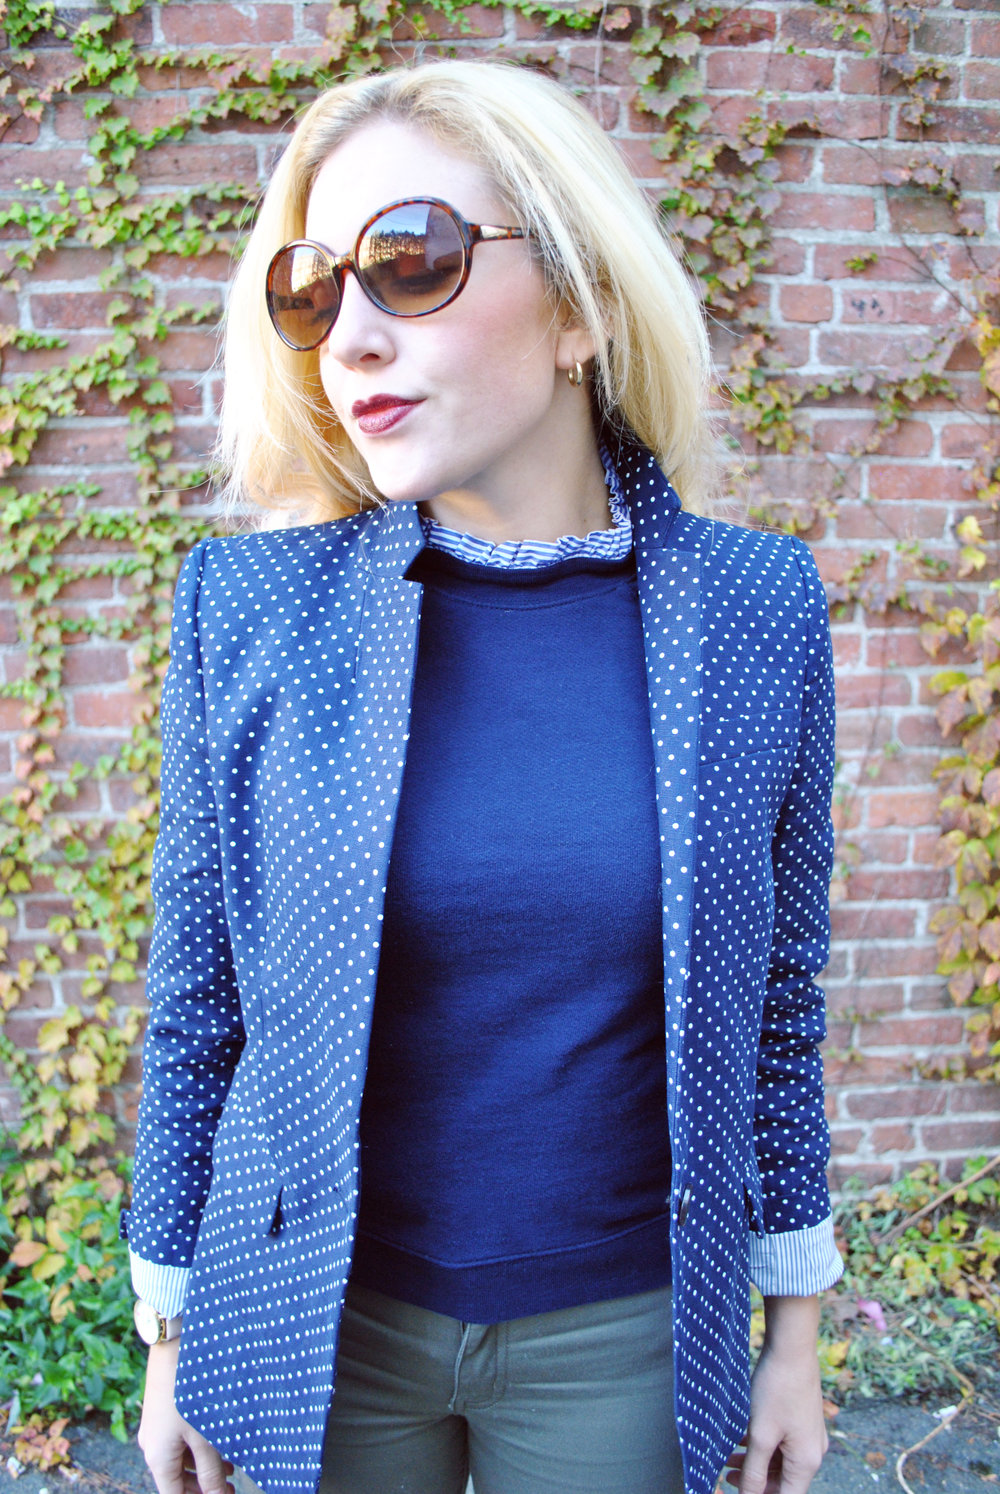 thoughtfulwish | preppy // boston // fashion // blogger // navy // olive // polka dots // stripes // ivy league // fall outfit // olive and navy outfit